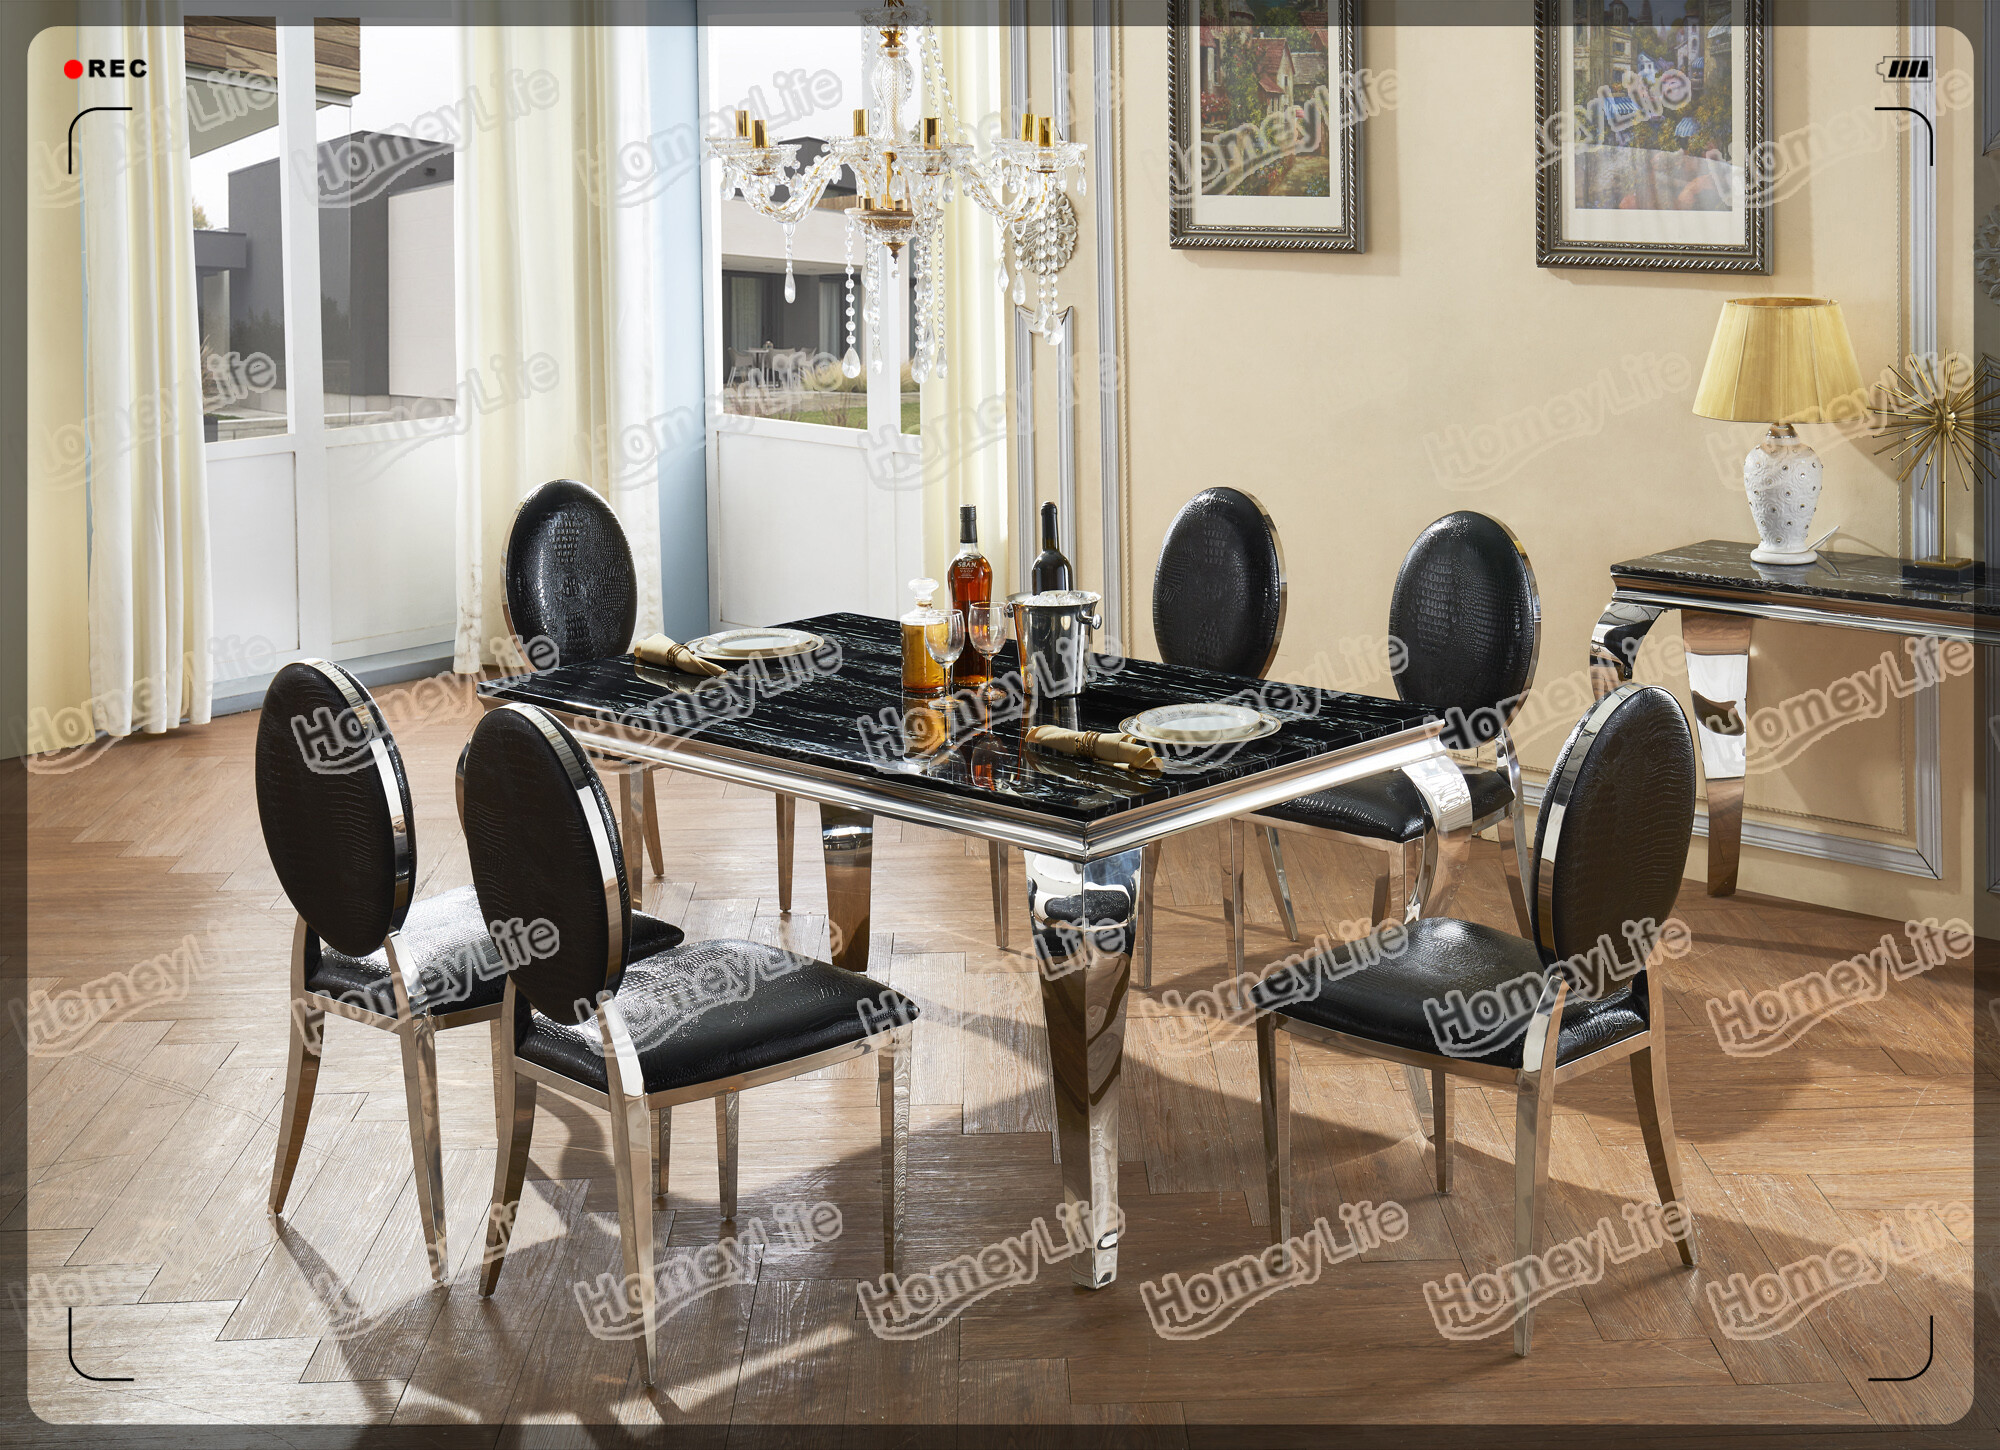 6 Seater Marble Dining Table With Stainless Steel Frame HT25#